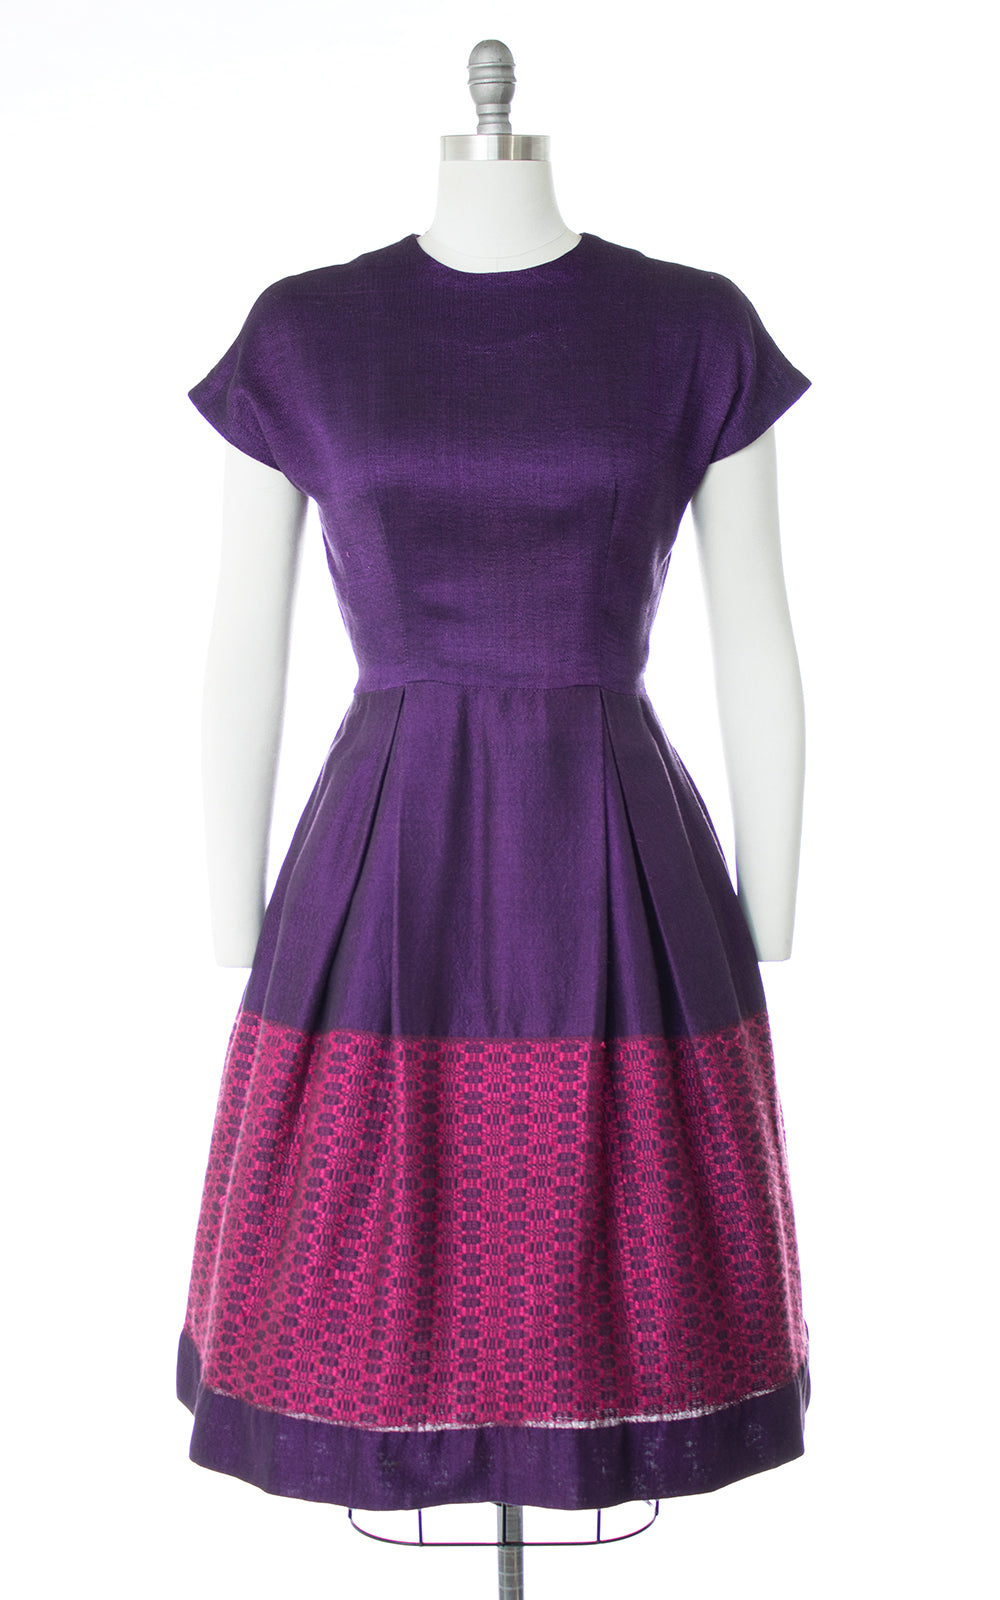 1950s Hand-Loomed Color Block Dress